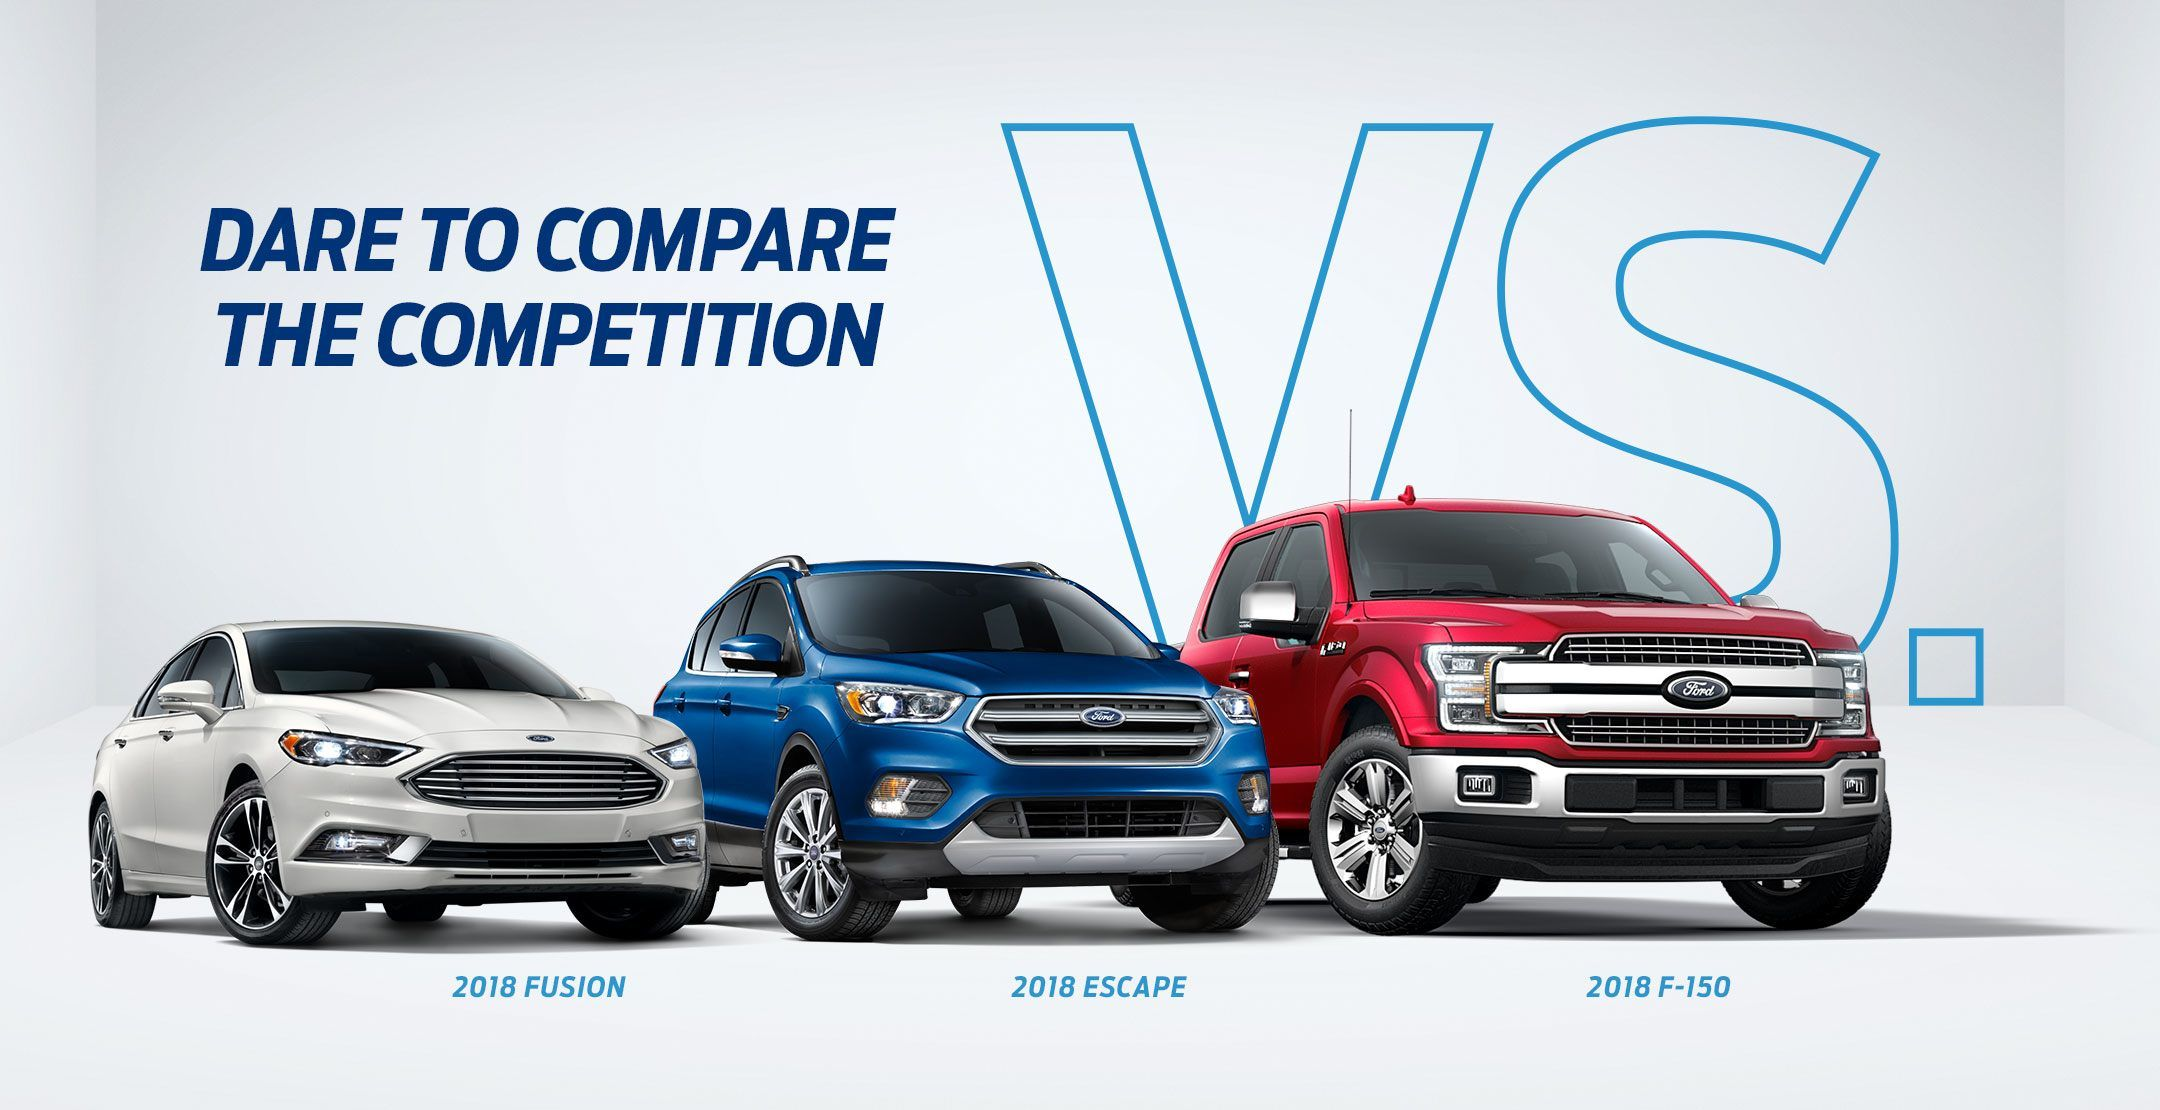 Vehicle Deals And Current Offers Buy A New Ford From Your Local Ford Dealer Near San Francisco Sacramento And Fresno Fo With Images Ford Motor Company Ford Motor Ford